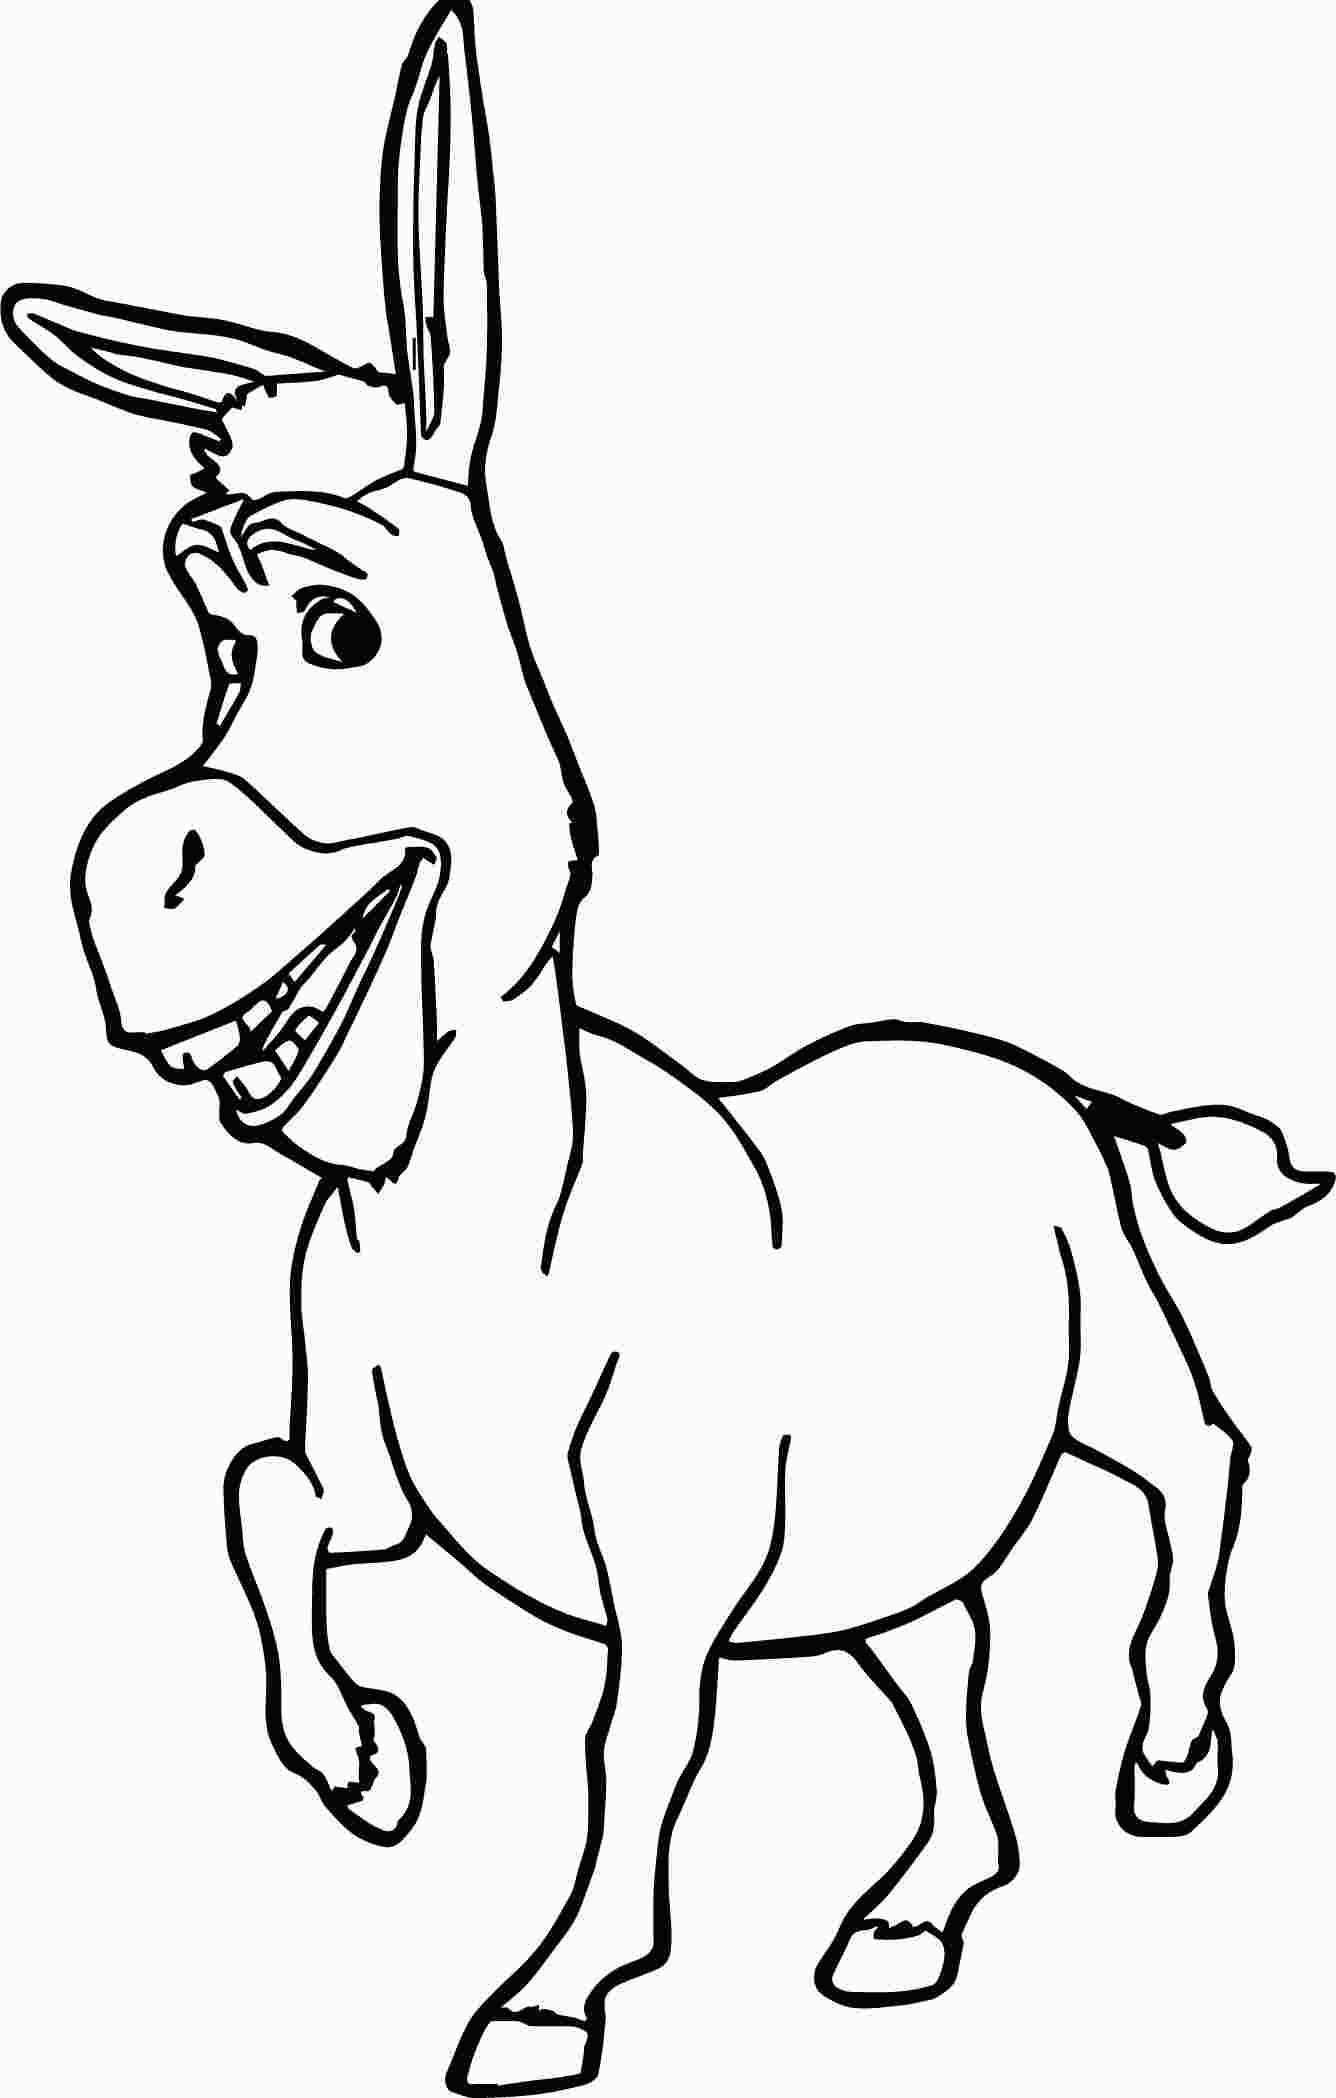 Donkey From Shrek Coloring Pages In 2020 Cartoon Coloring Pages